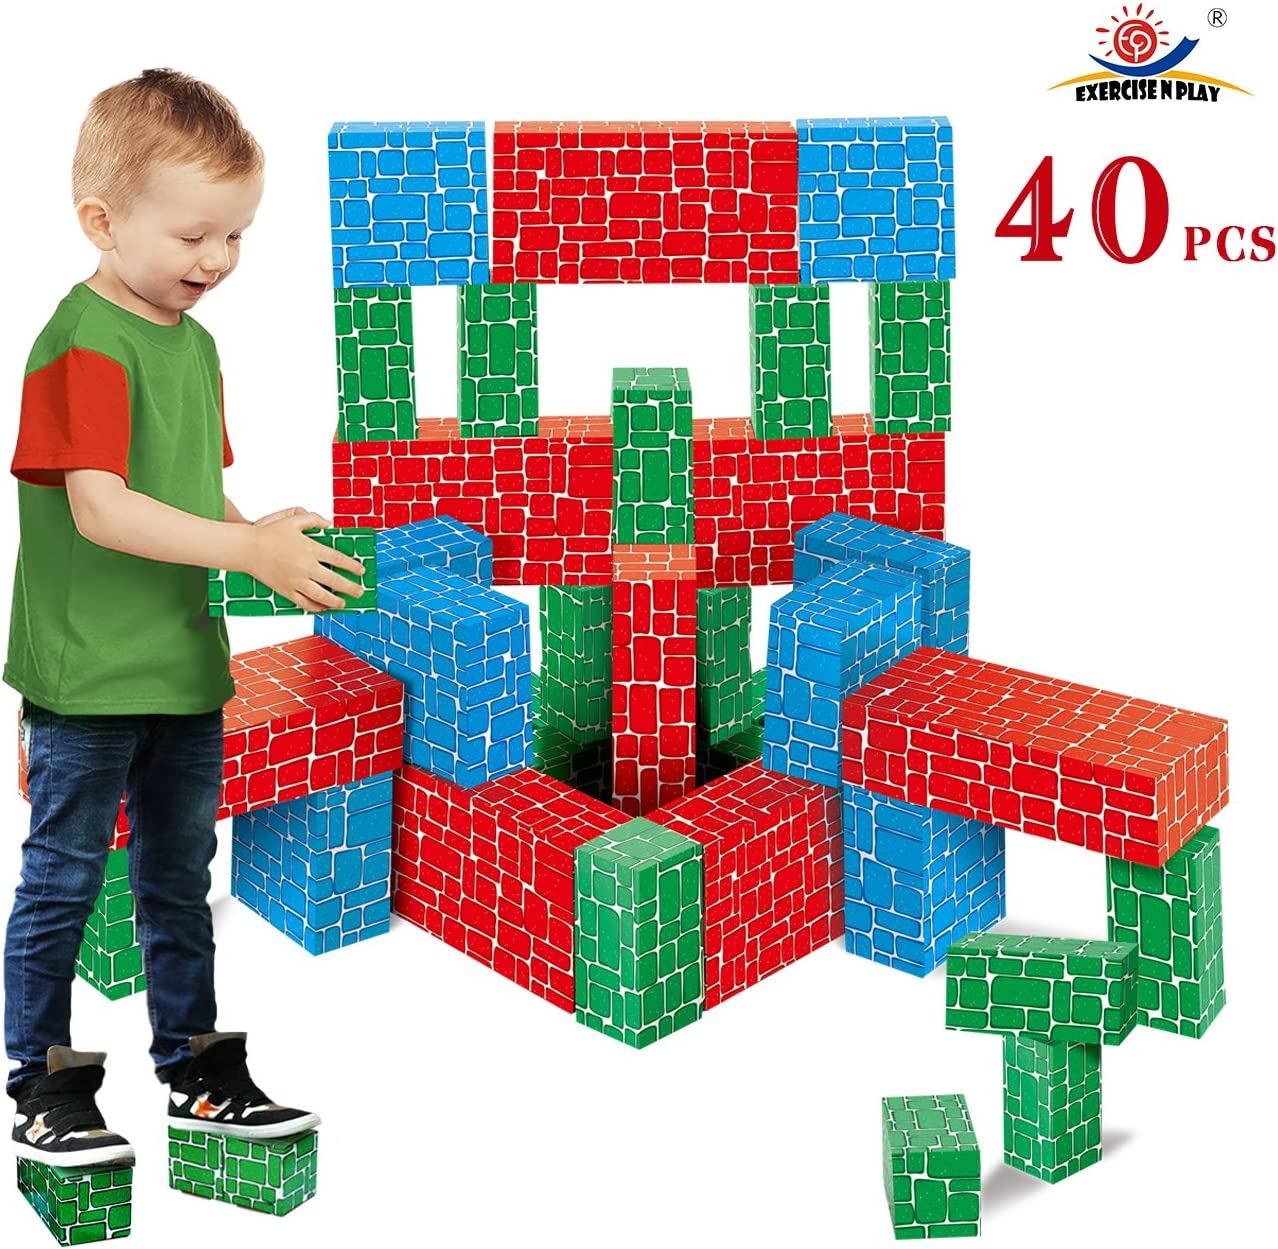 50+ Best Gift Ideas & Toys for 4 Year Old Boys (2020 Updated) 26